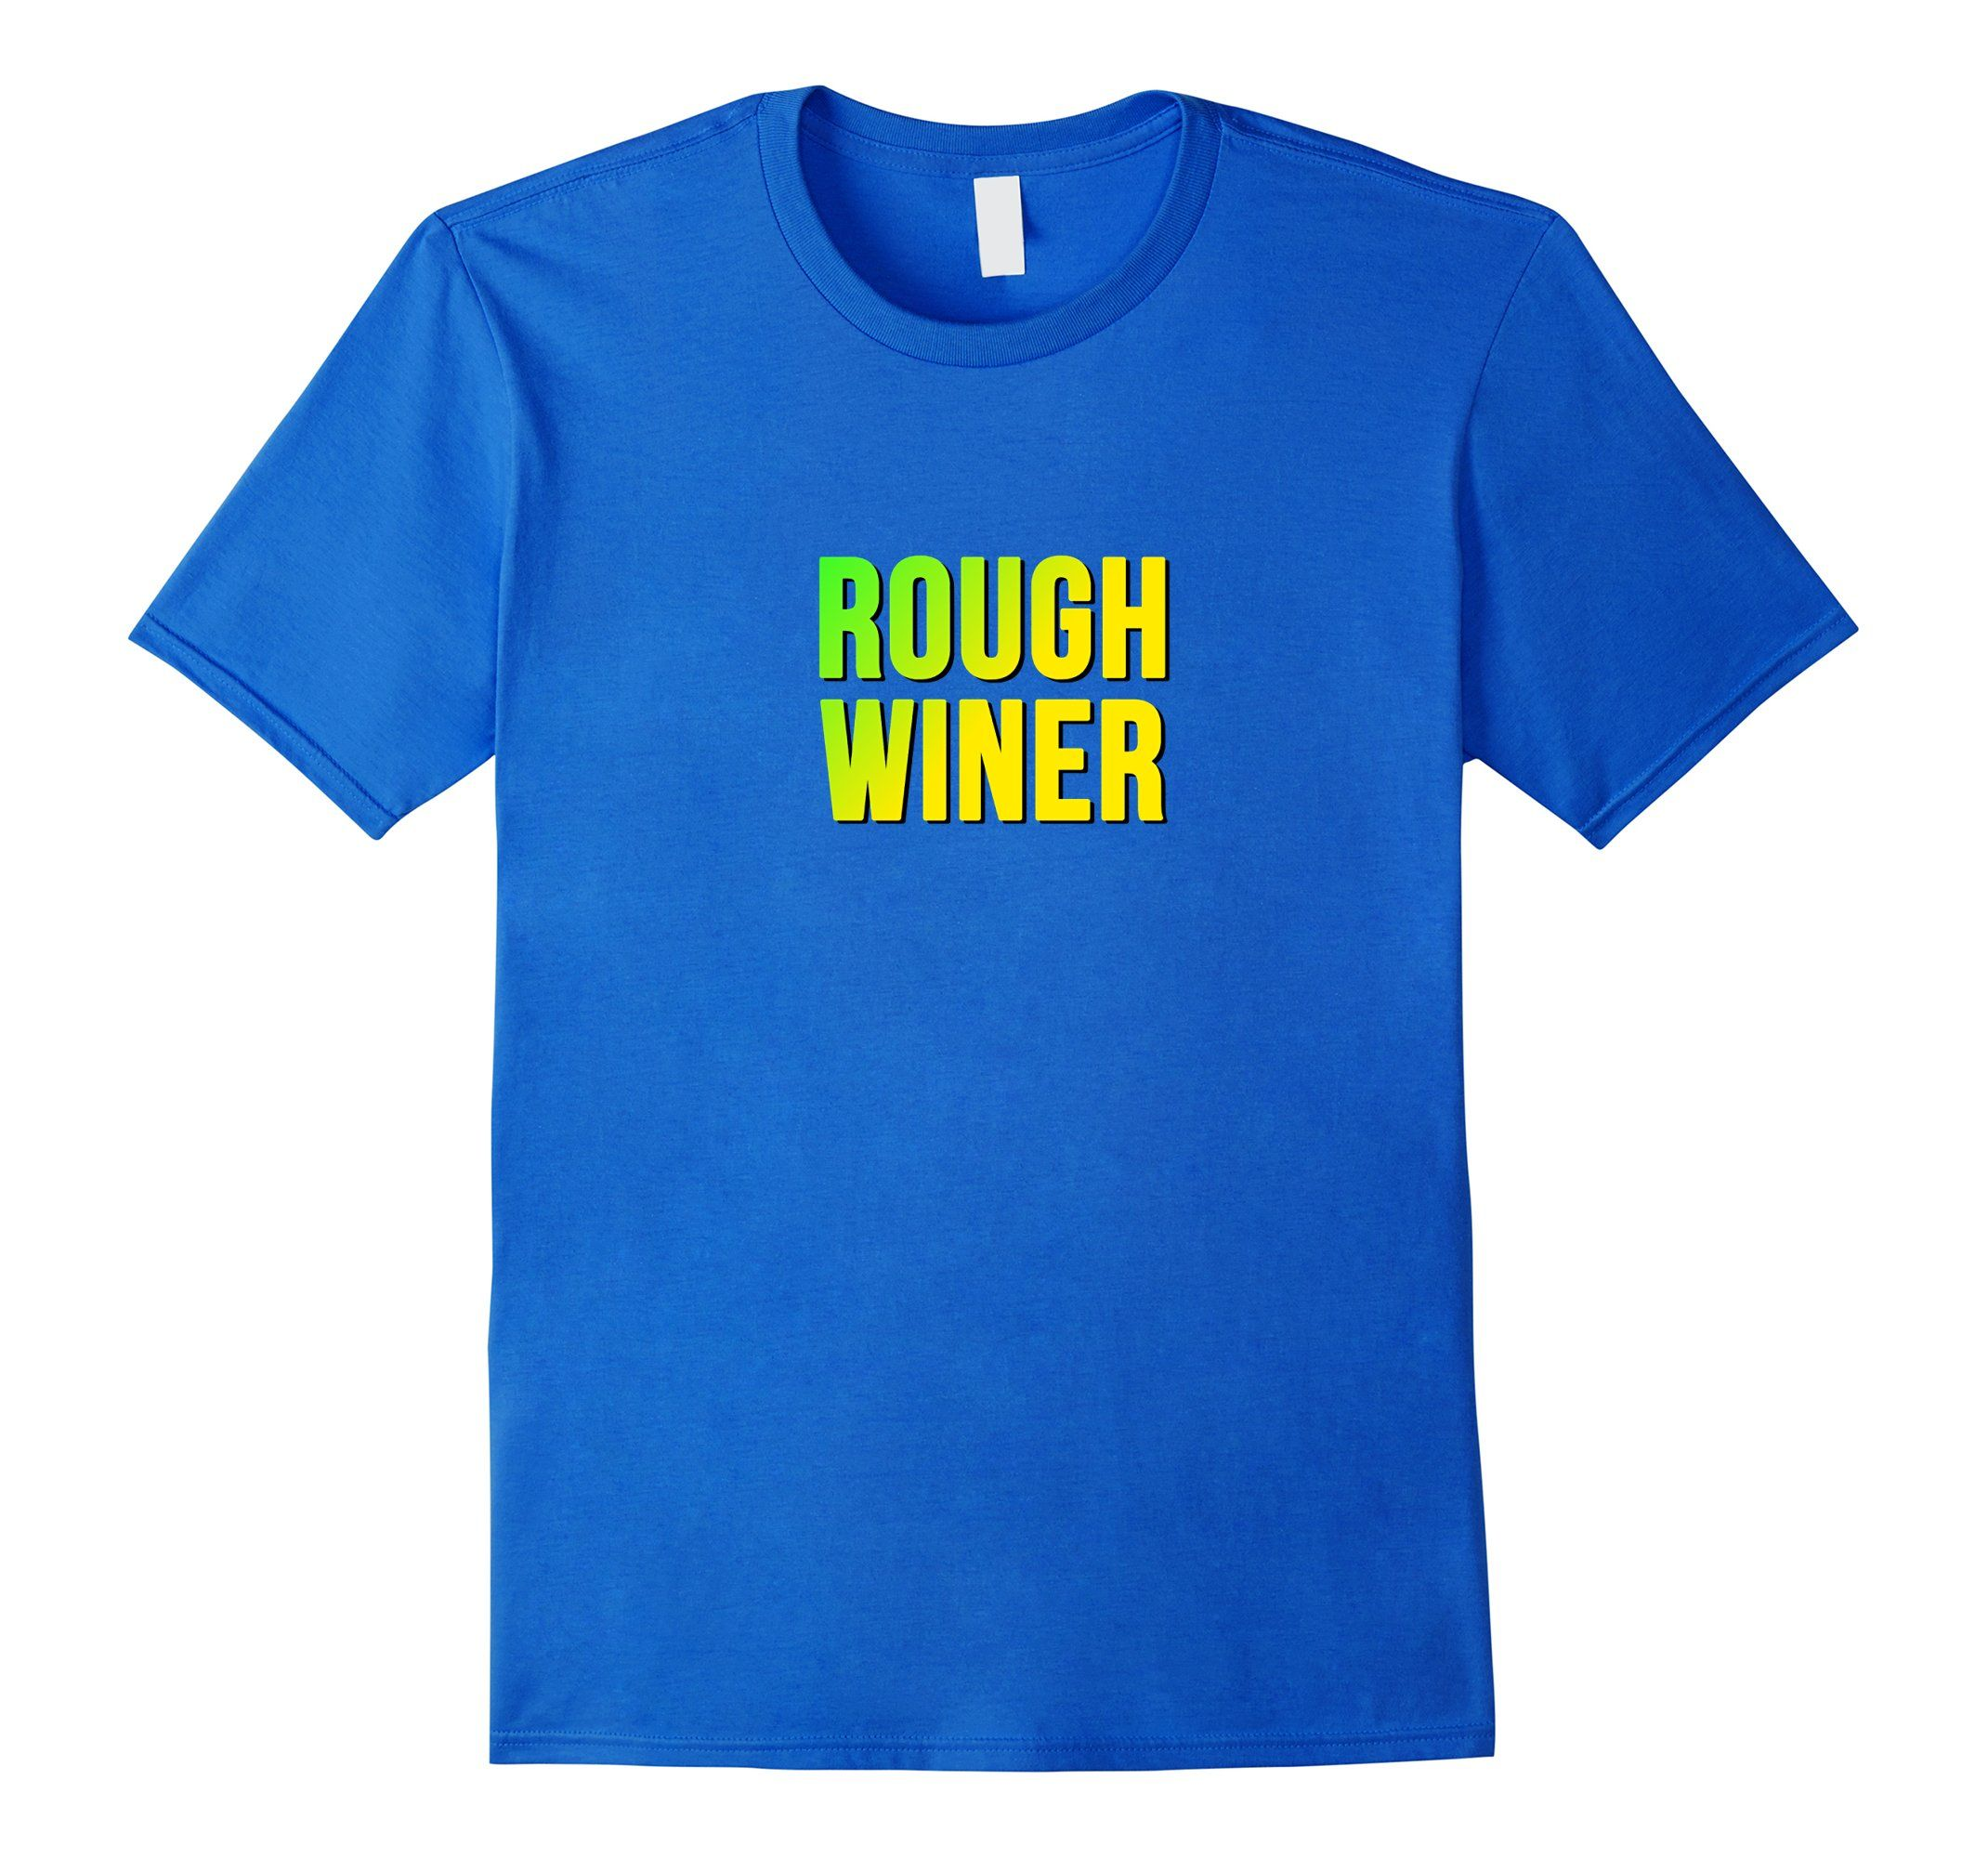 Amazon Com Rough Winer Soca Trinidad Carnival 2018 Shirts Clothing